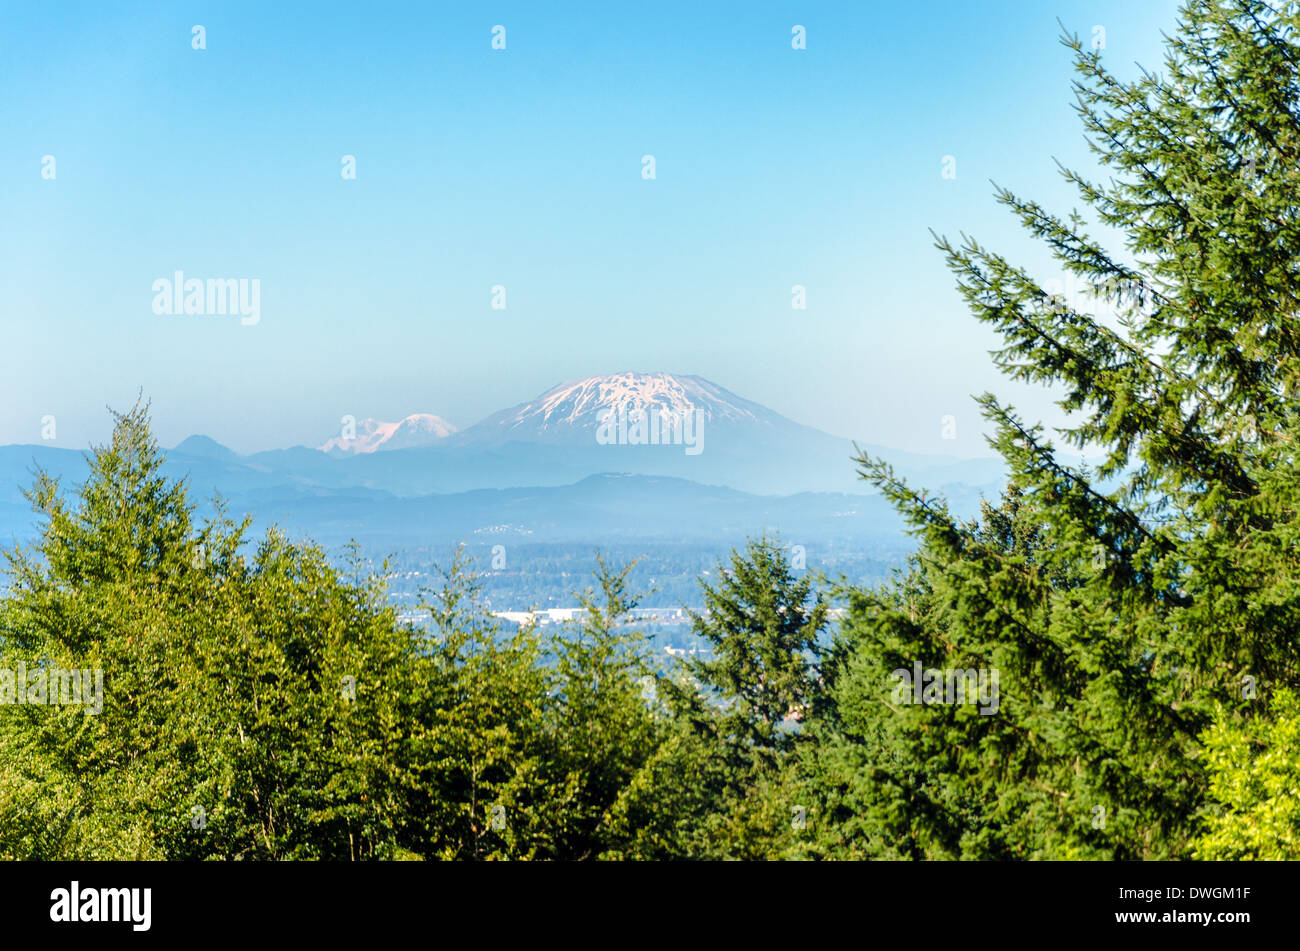 View of Mount St Helens as seen from Portland, Oregon - Stock Image